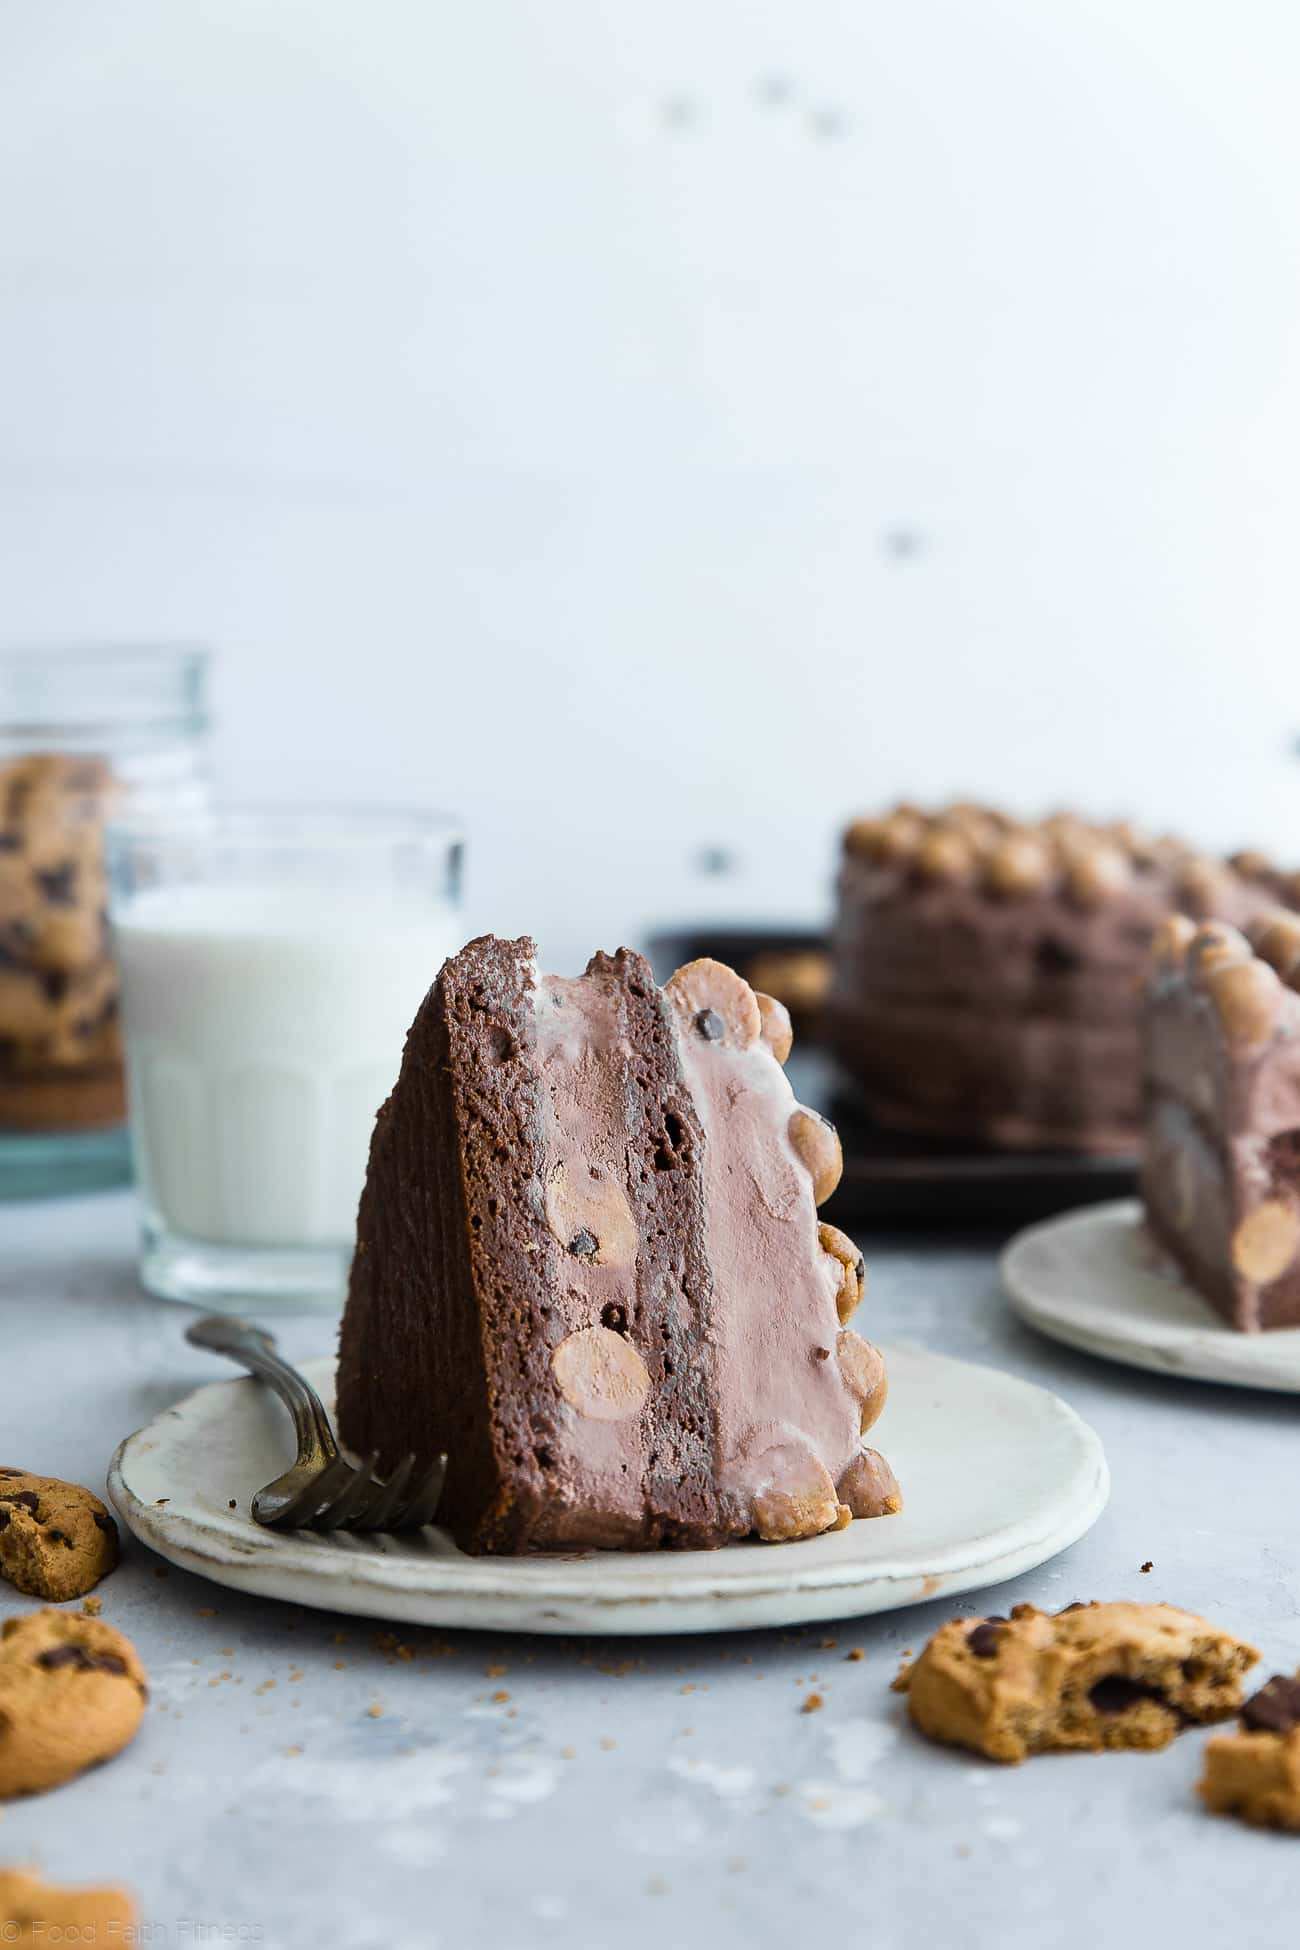 Healthy Cookie Dough Ice Cream Cake - This easy homemade ice cream cake uses healthy chocolate ice cream and bites of chickpea cookie dough for a grain and gluten free, lighter dessert that everyone will love! | Foodfaithfitness.com | @FoodFaithFit